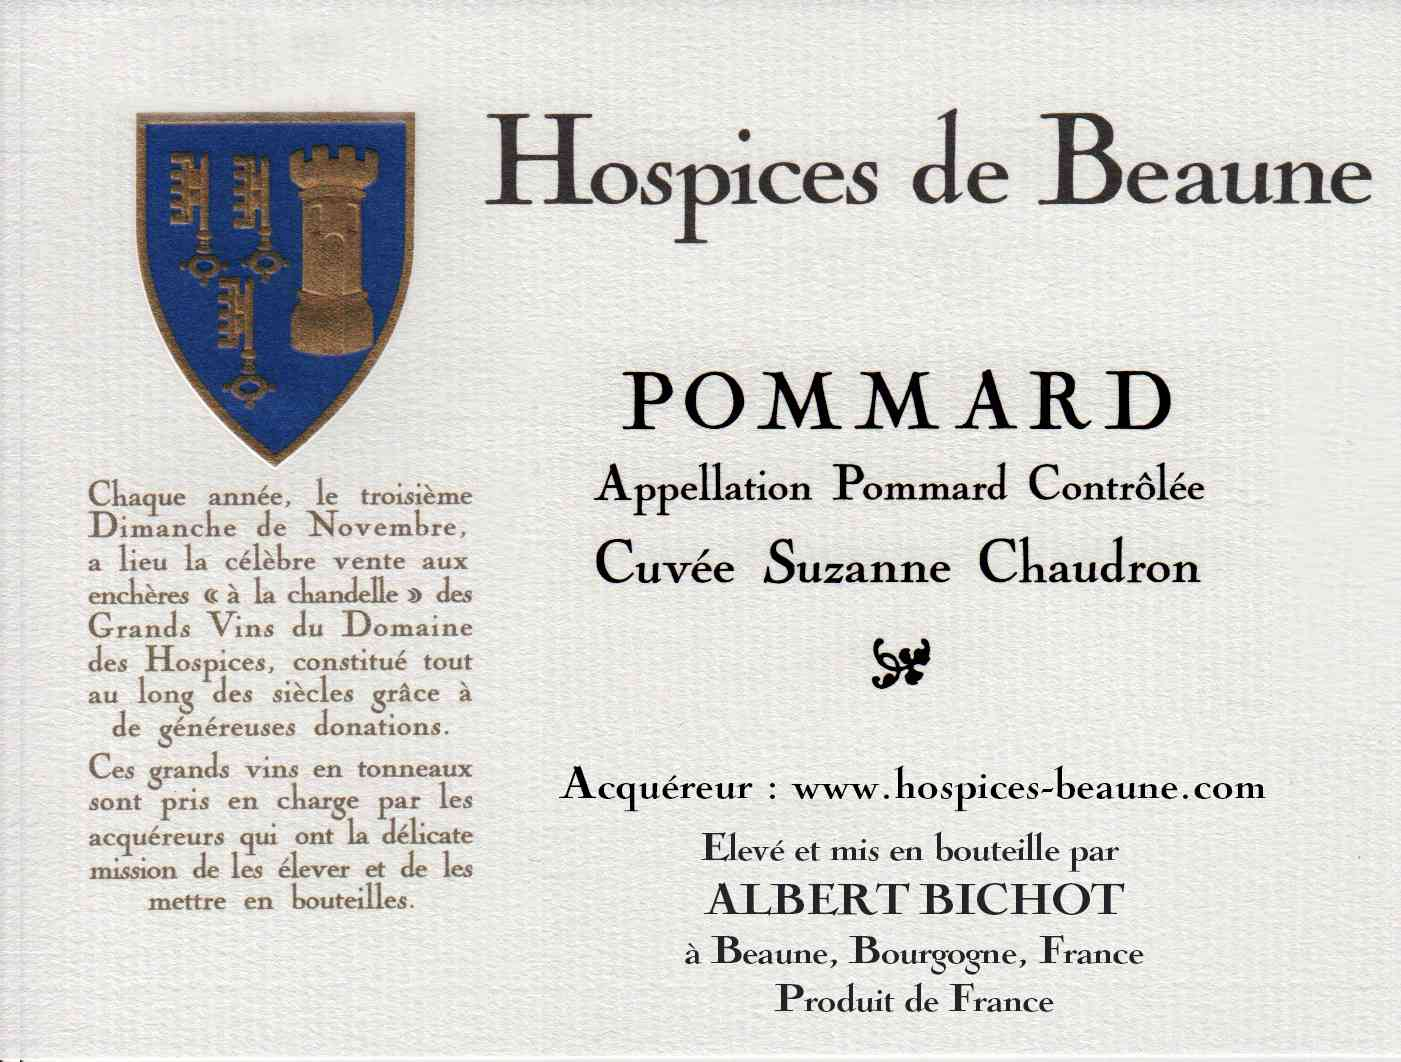 Encheres-auction-HospicesdeBeaune-AlbertBichot-Pommard-Cuvee-SuzanneChaudron